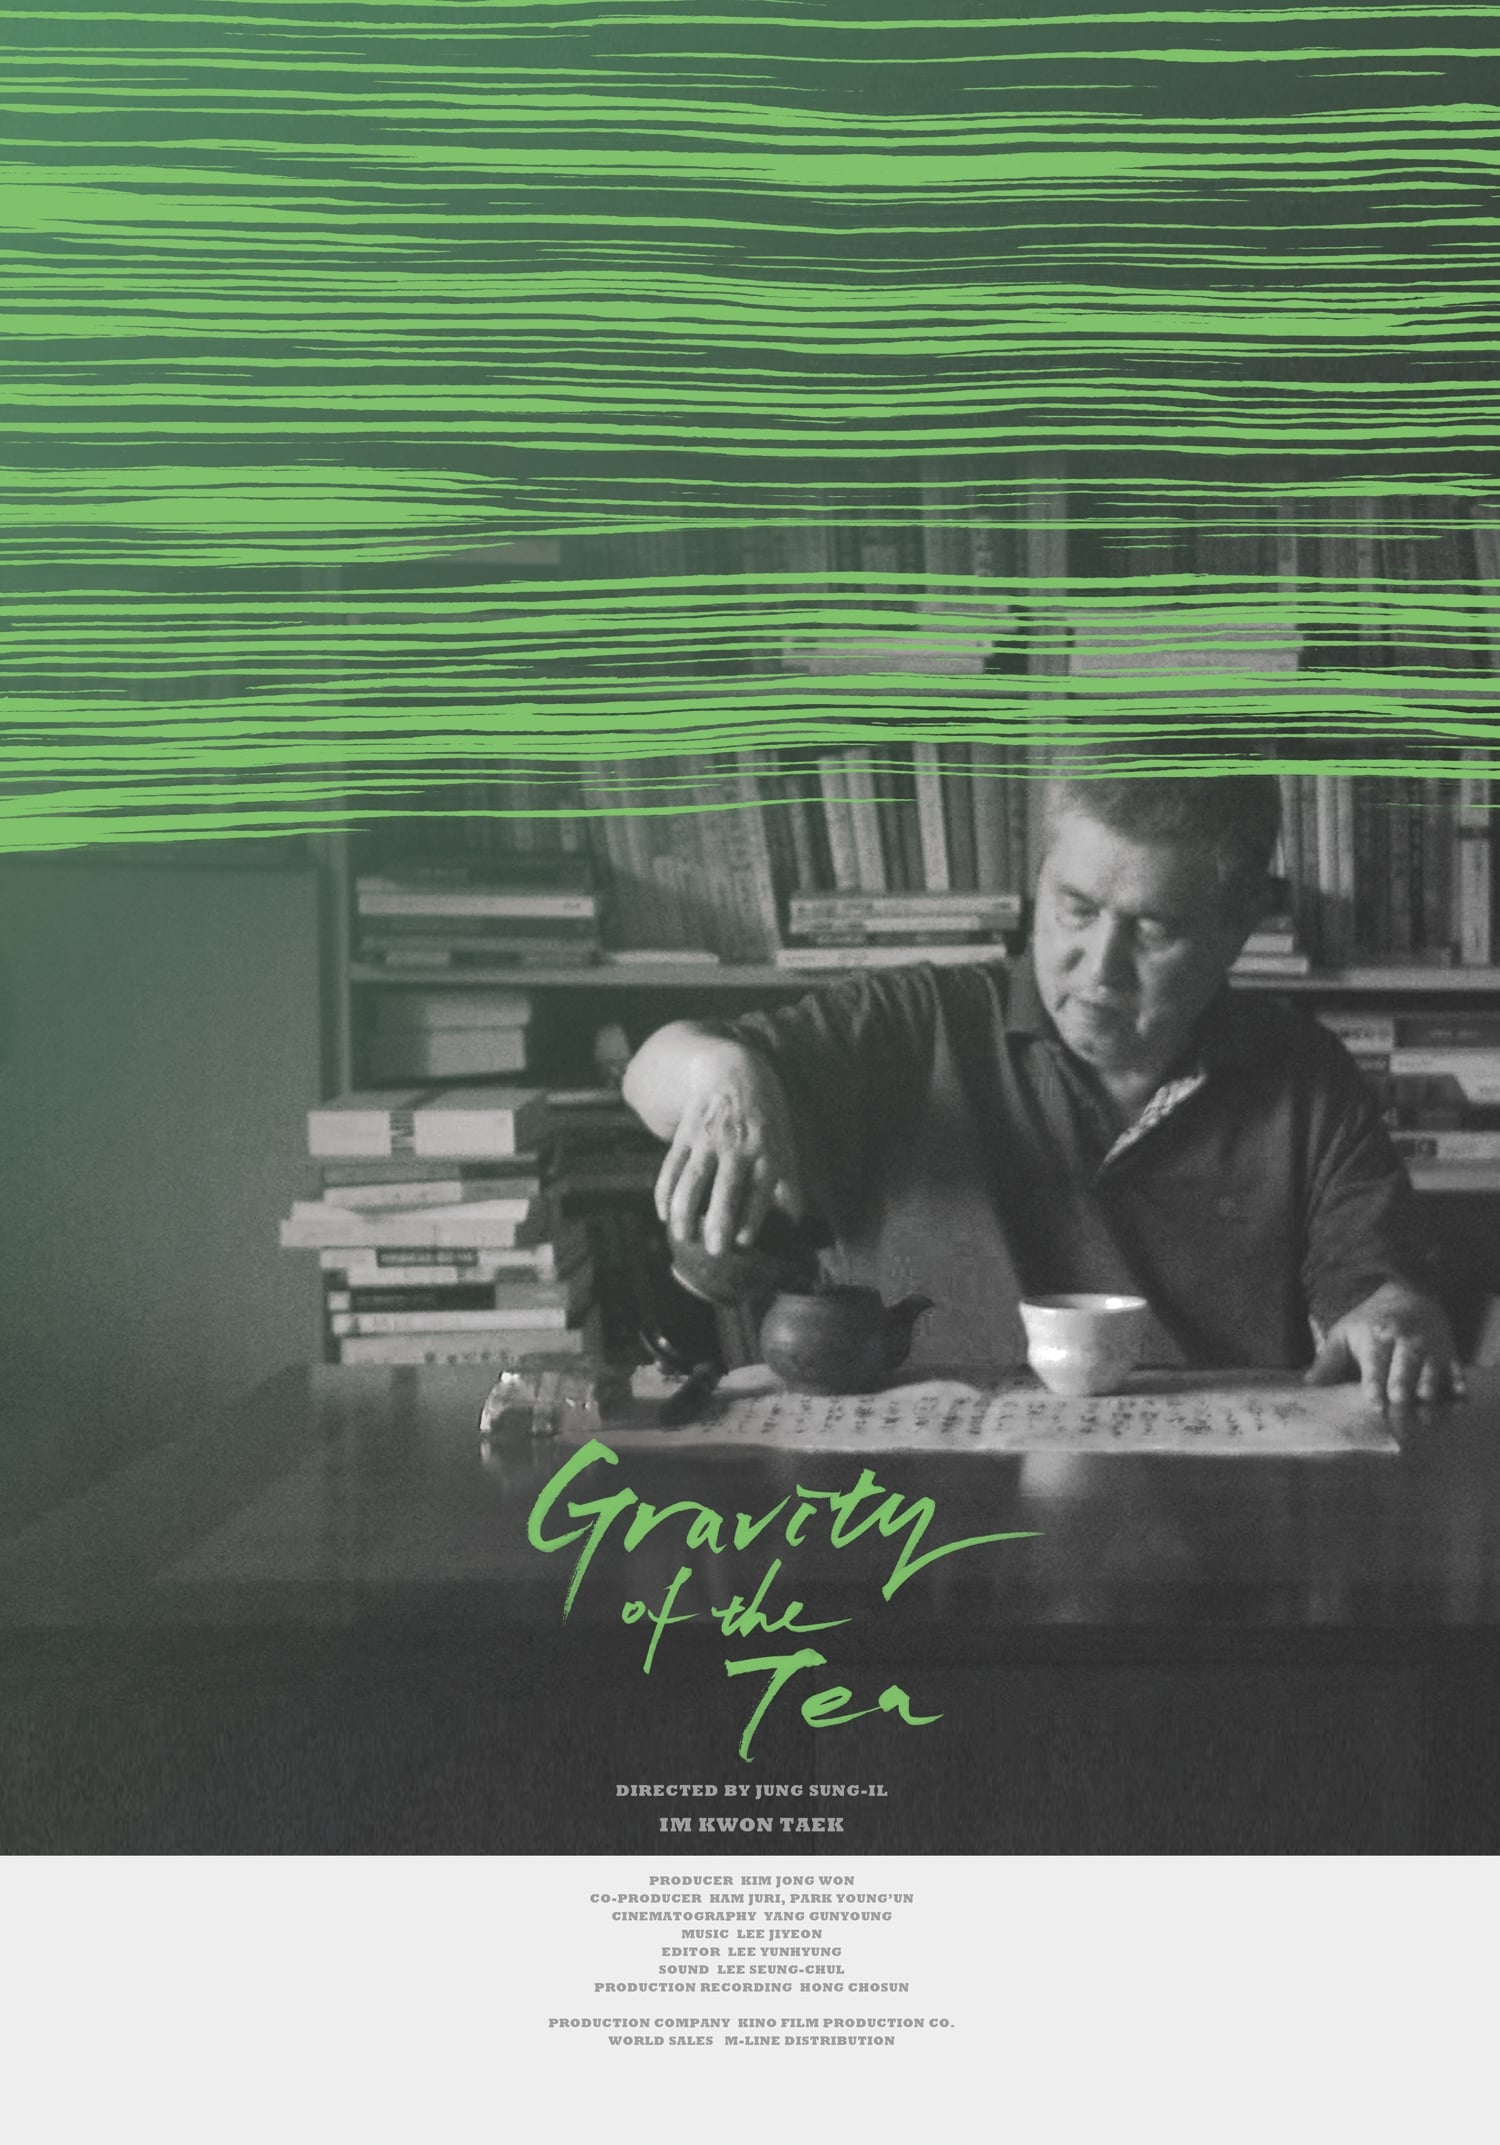 Gravity of the Tea